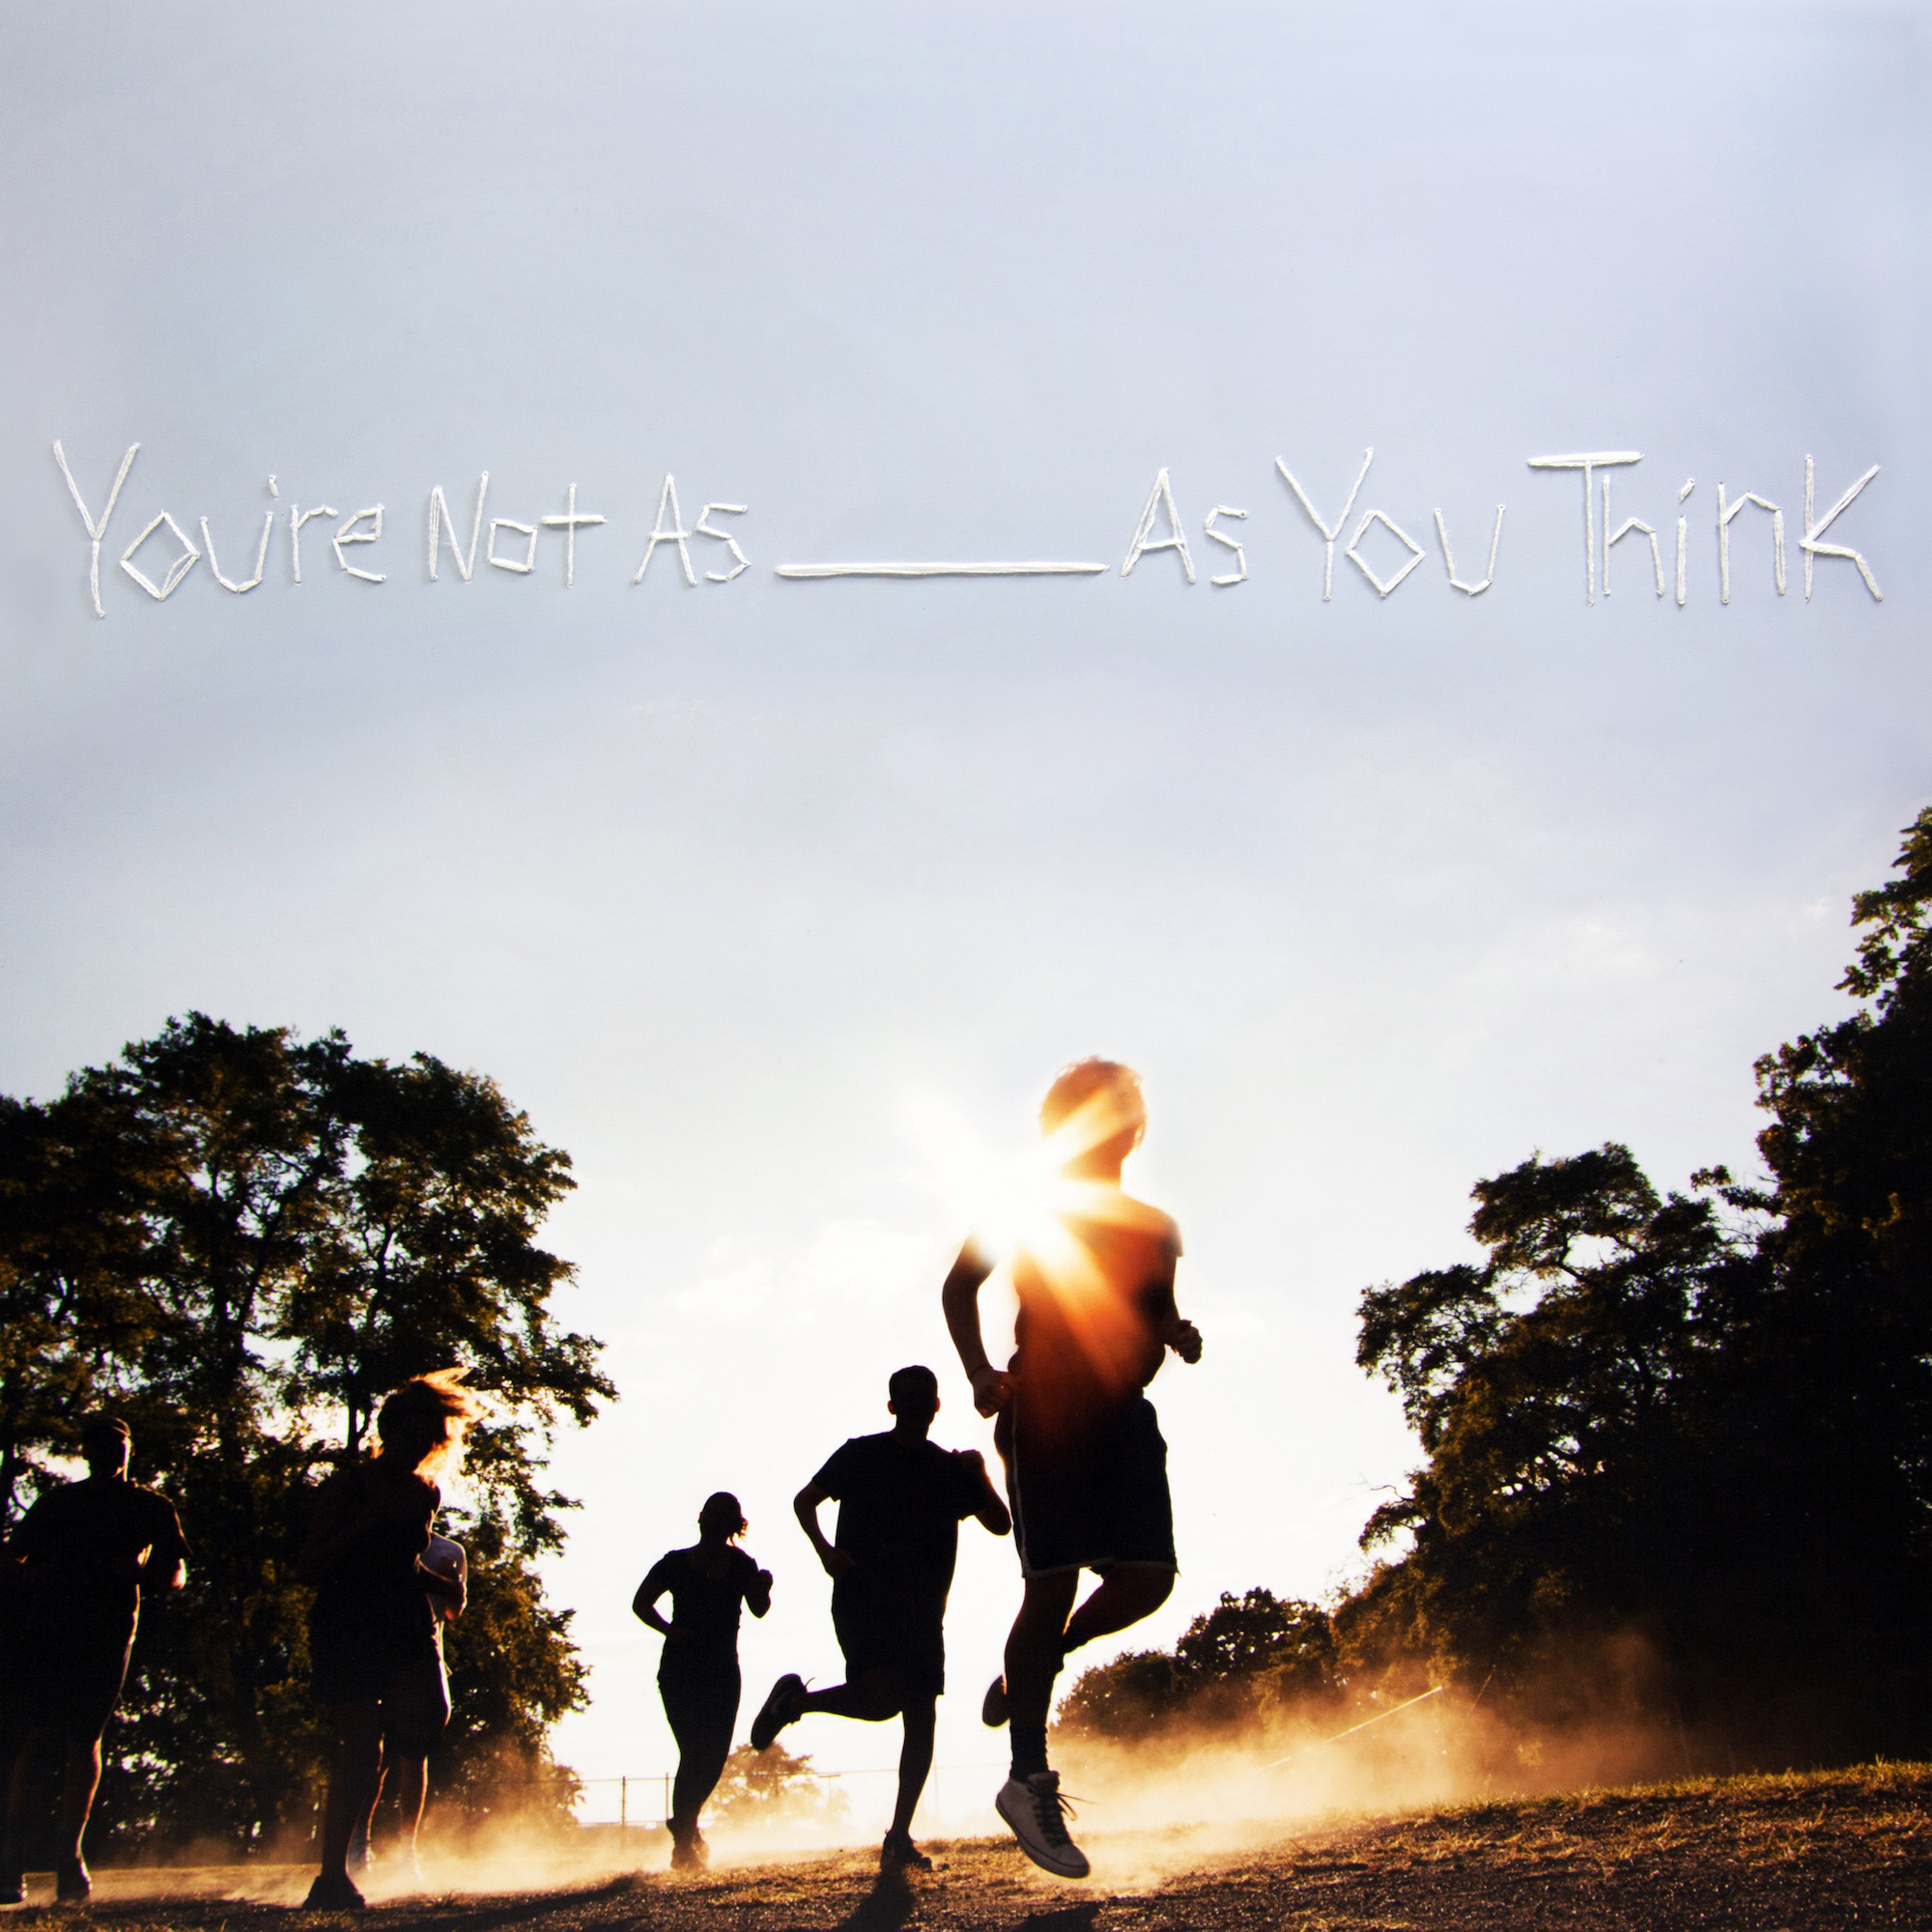 Sorority Noise – You're Not As ______ As You Think